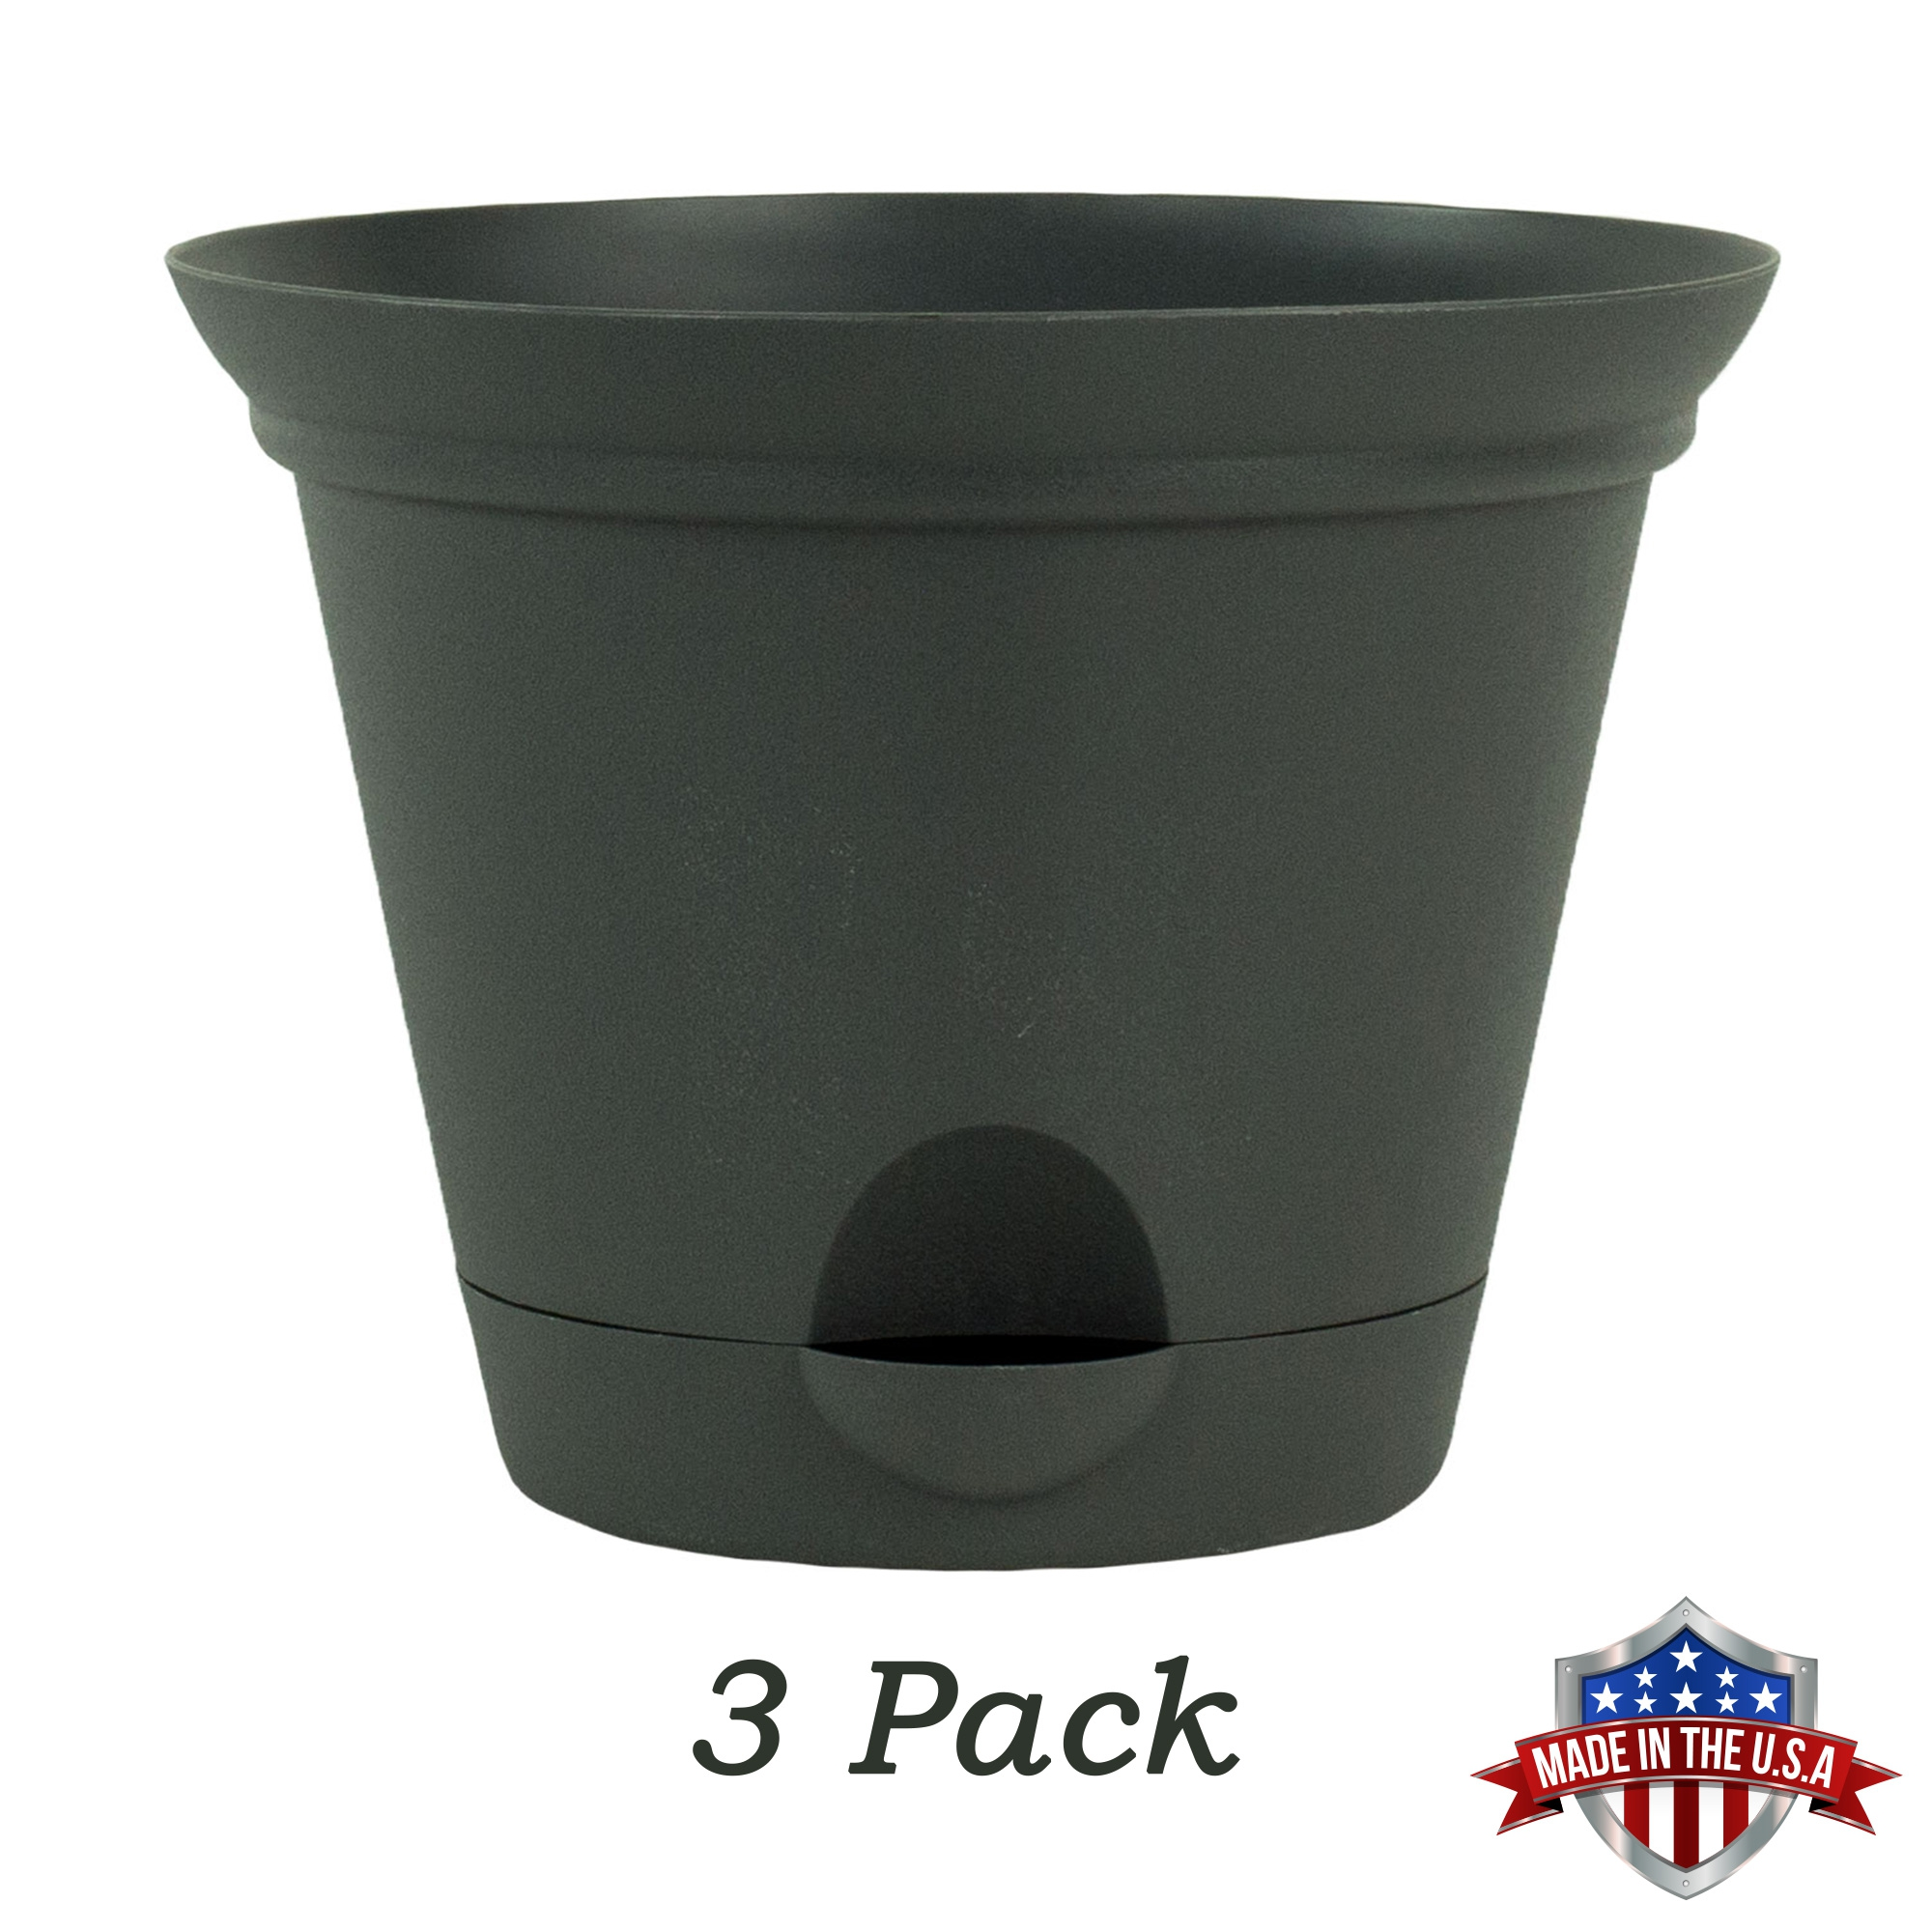 3 Pack 9.5 Inch Flat Gray Plastic Self Watering Flare Flower Pot or Garden Planter